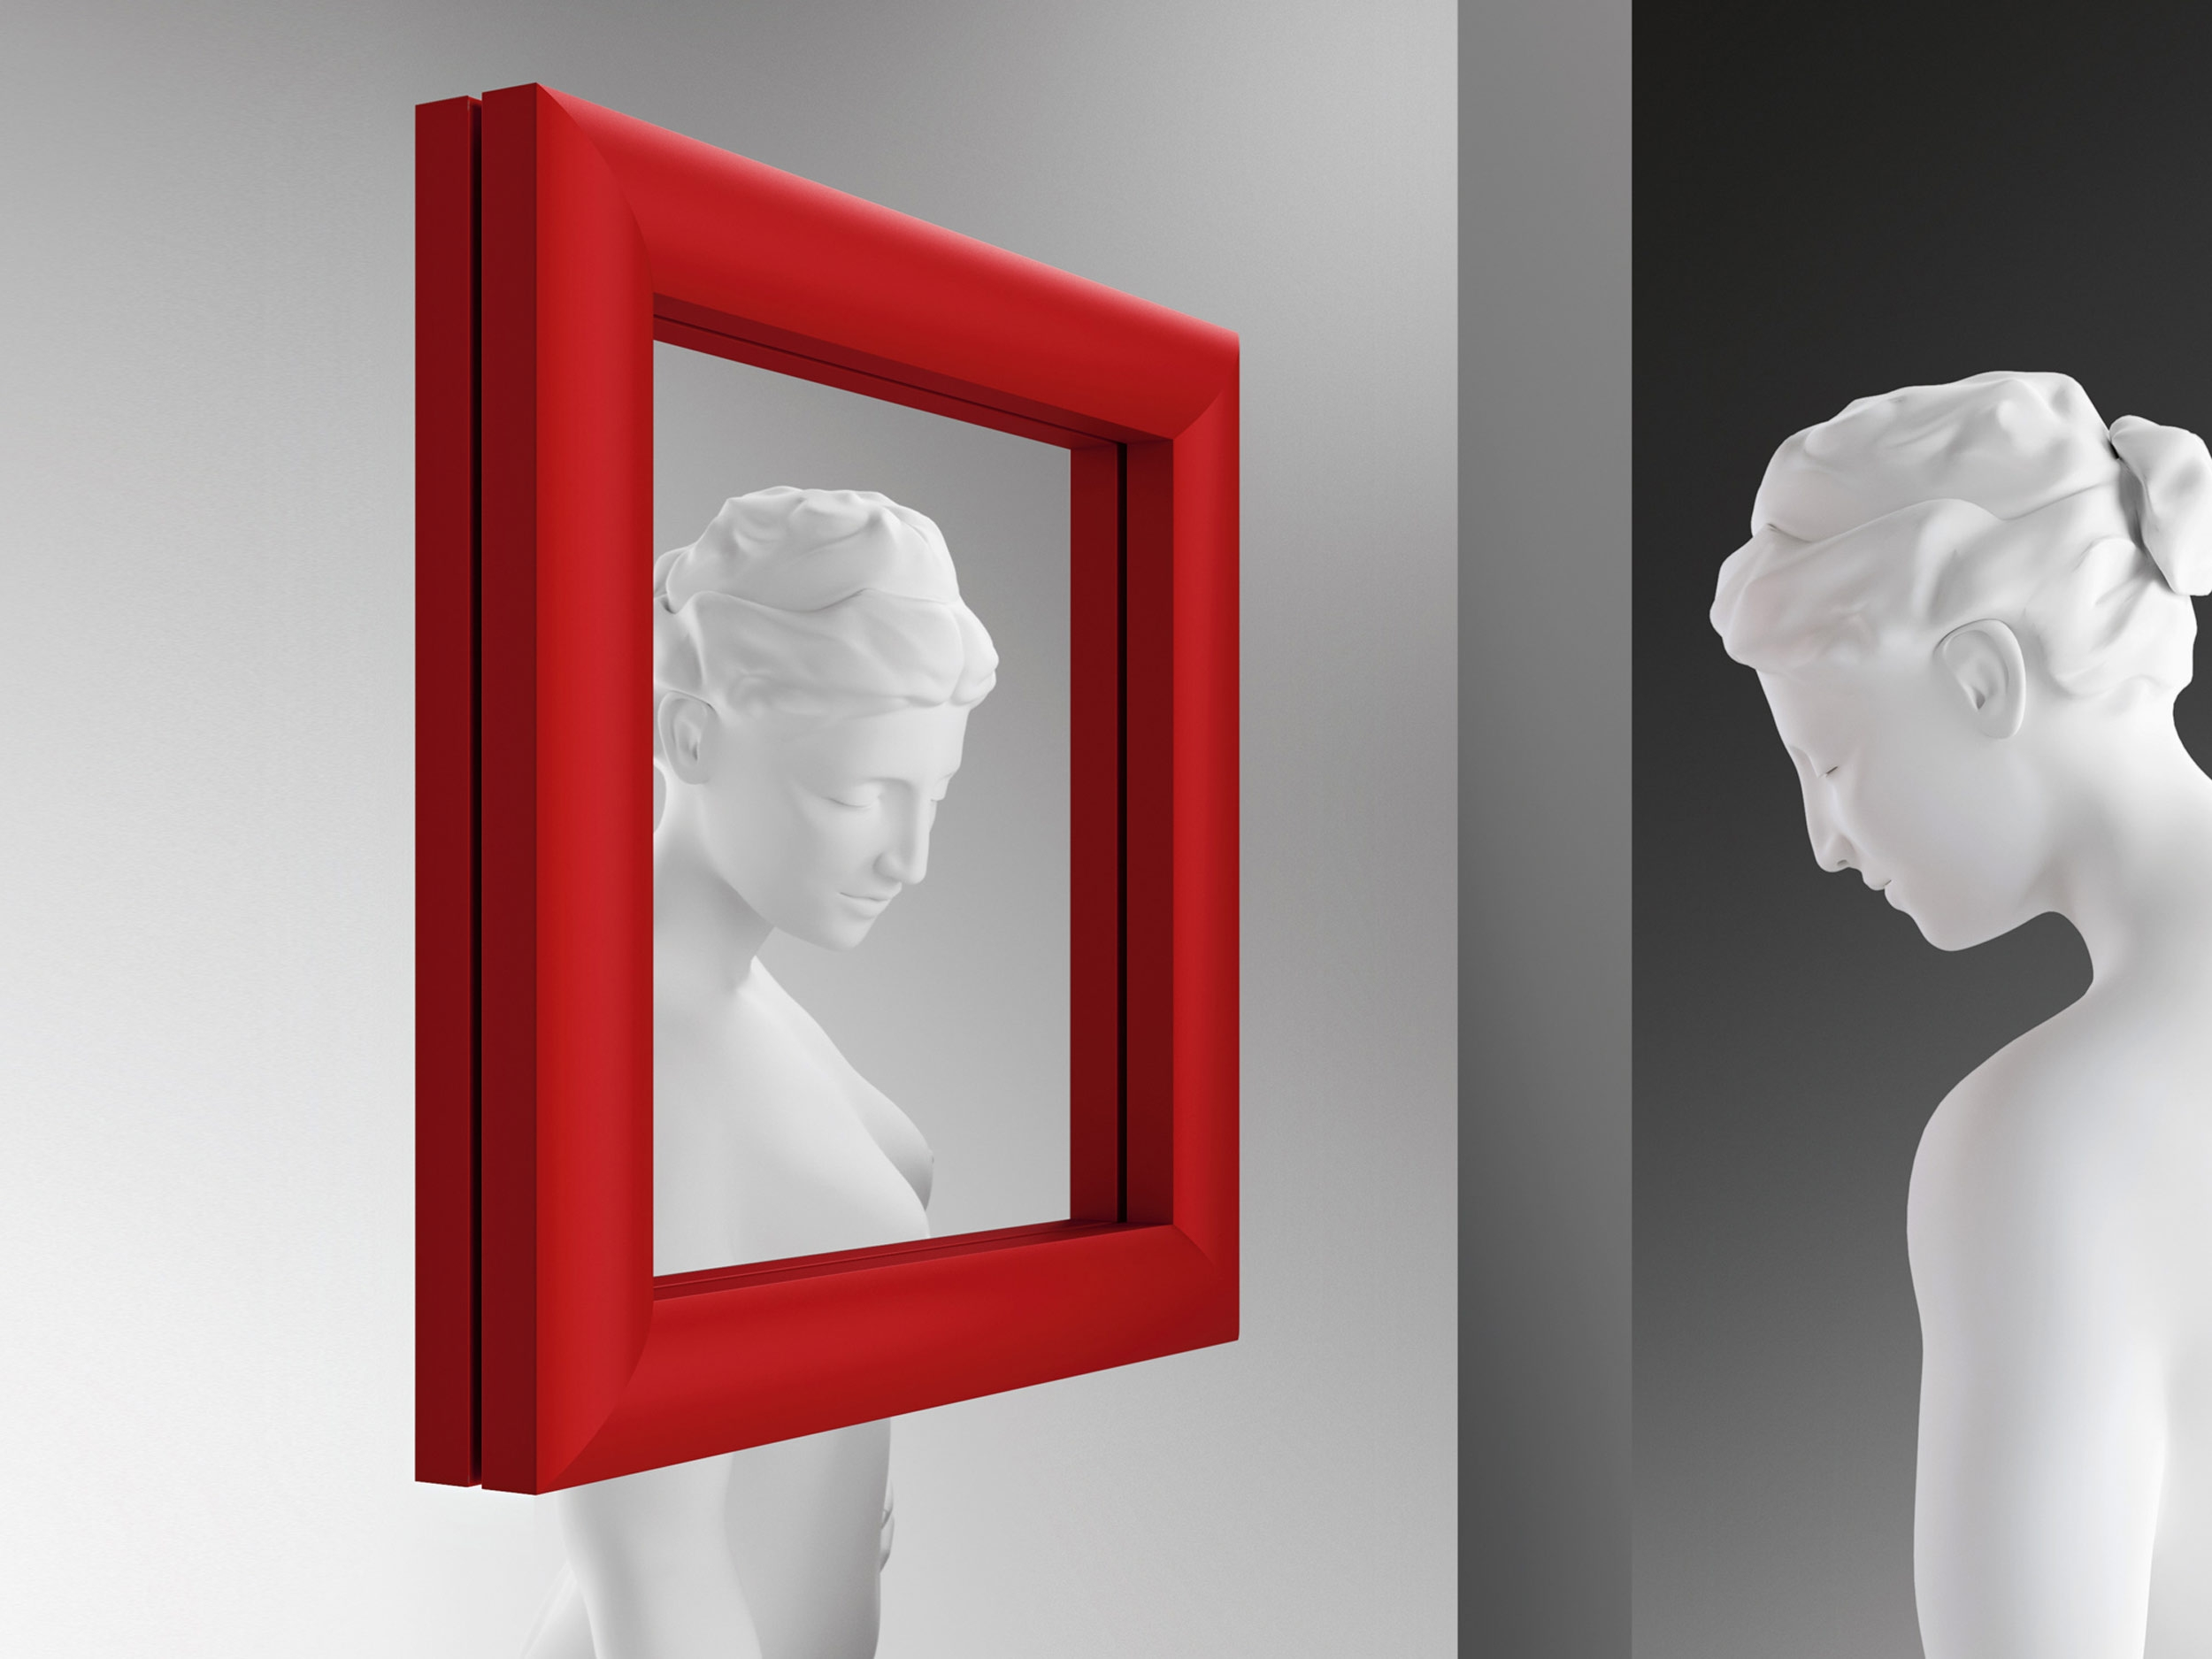 Ritratto Mirror Small Wall Mirror Glassdomain Within Red Wall Mirrors (Image 14 of 15)